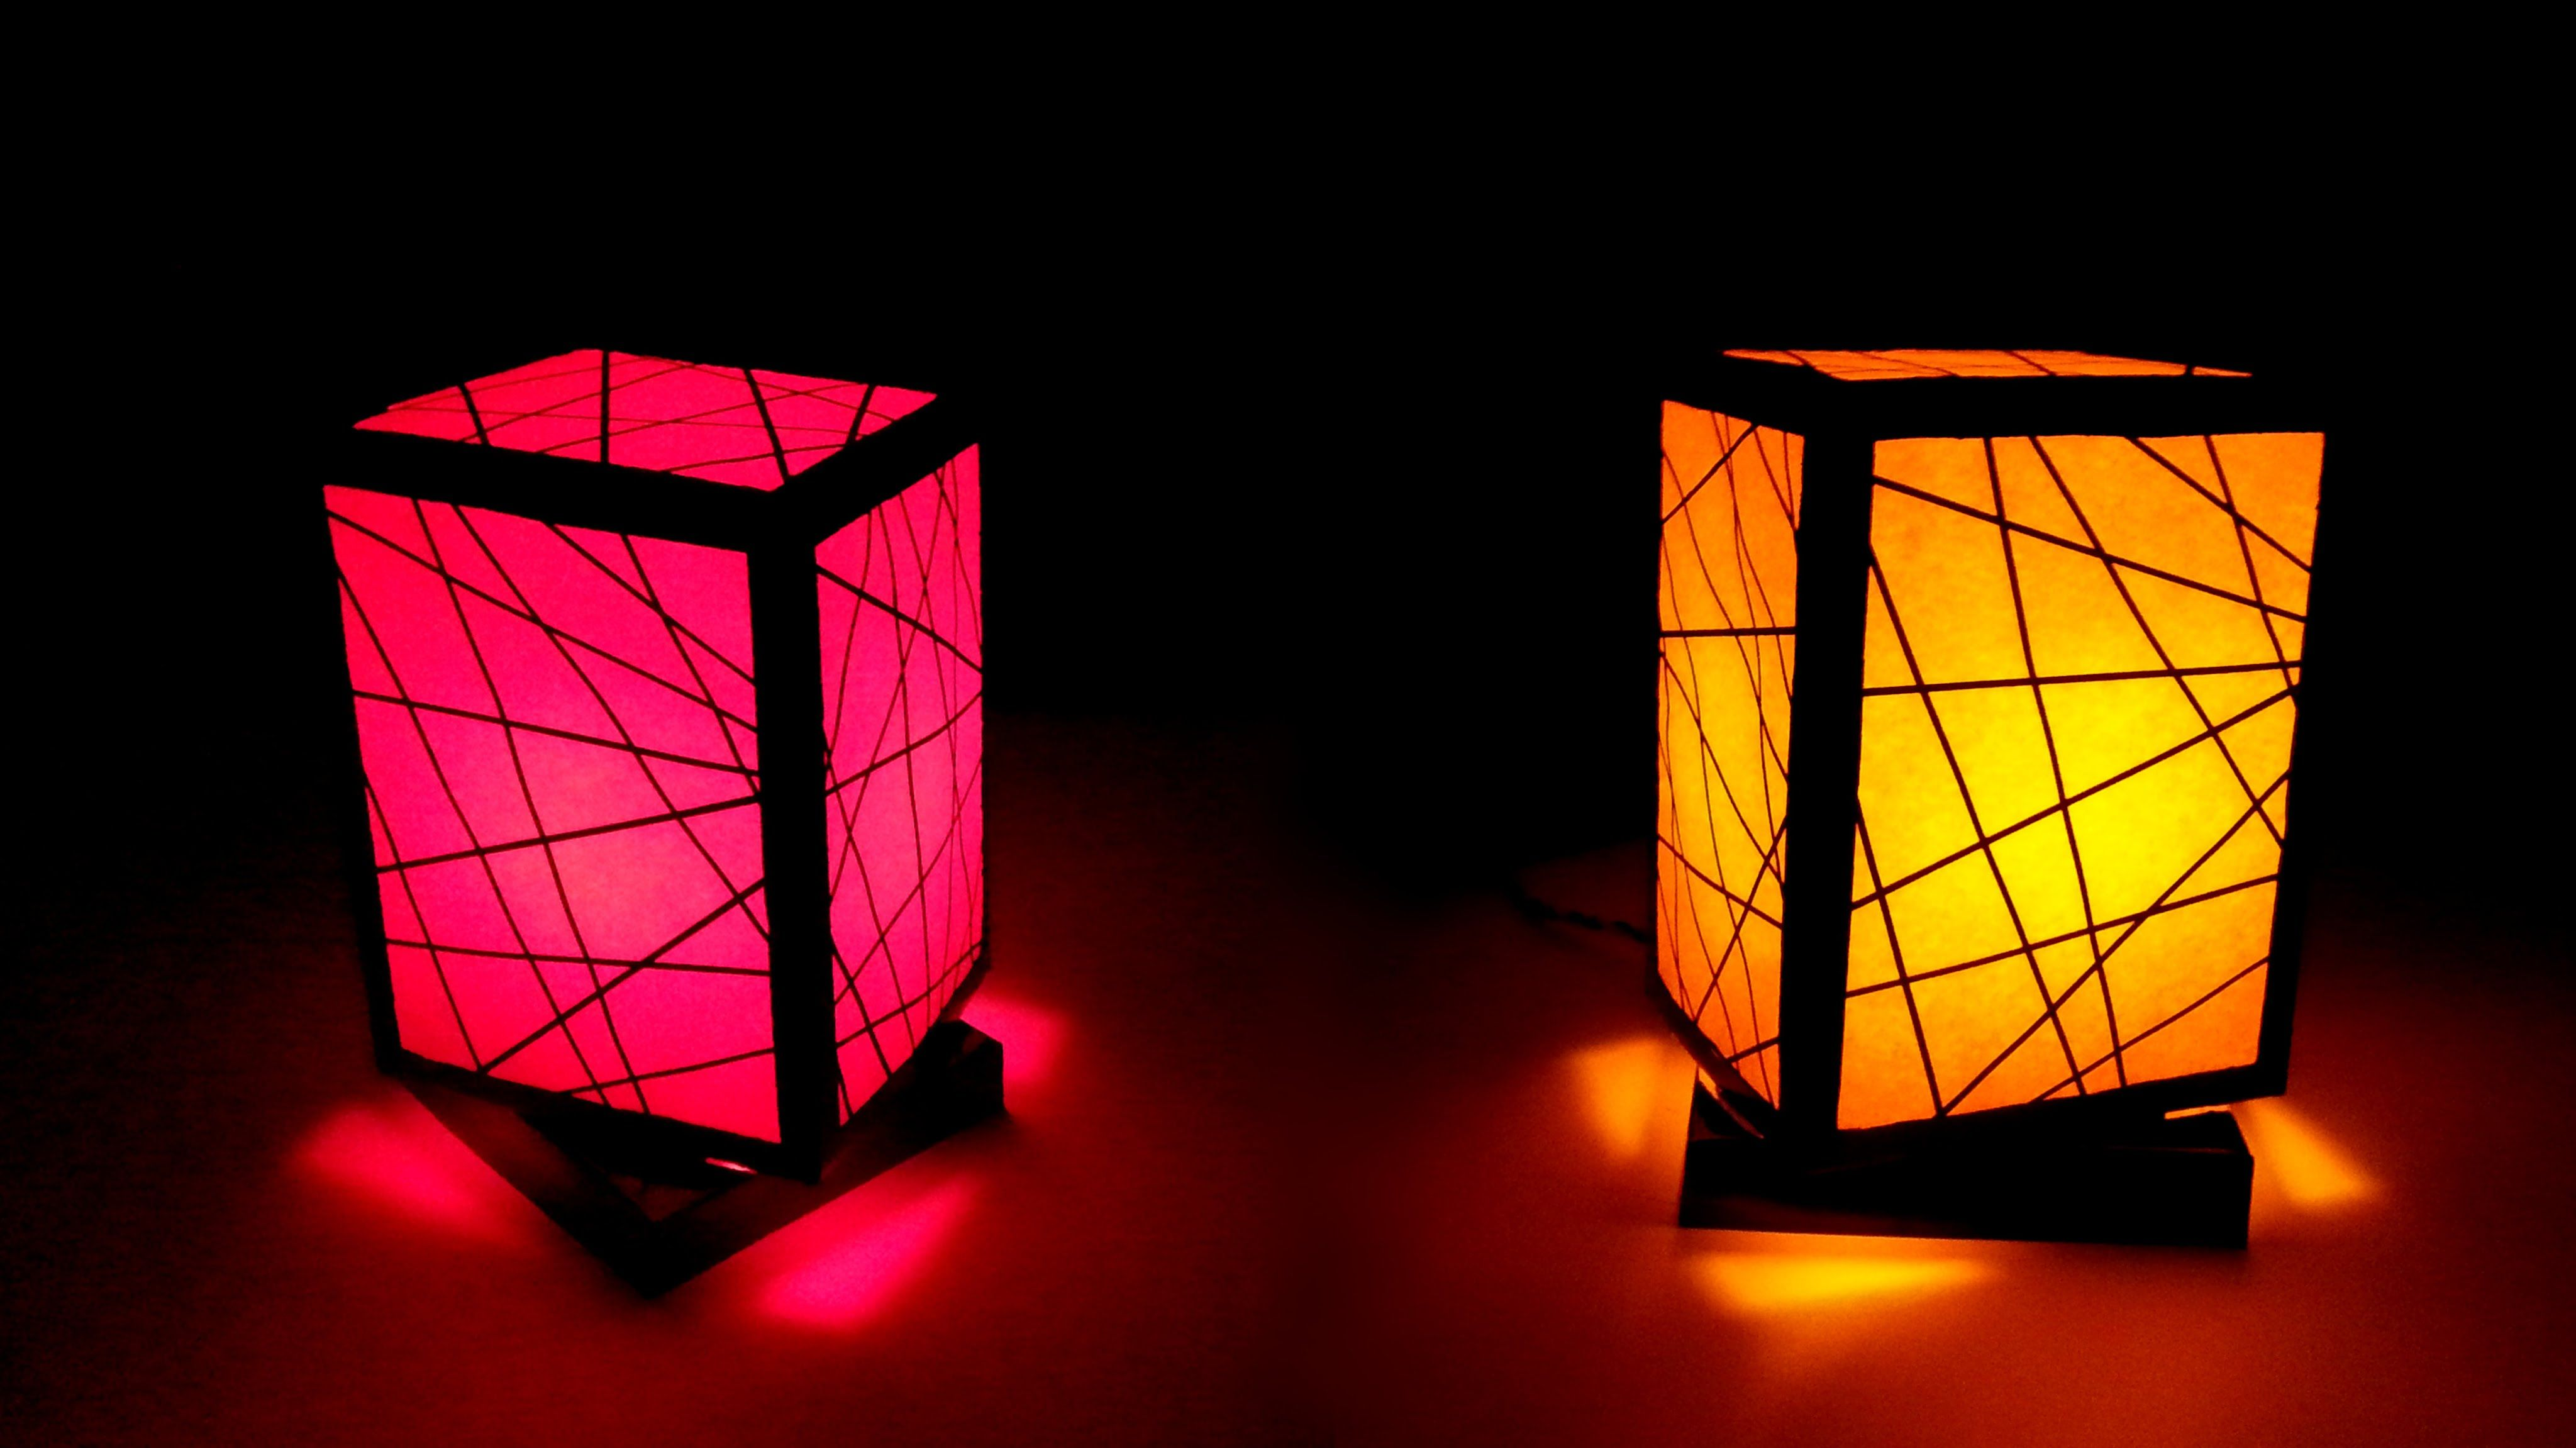 Easy Homemade Night Lamp With Paper This Lampshade Made From Is Simple To Make